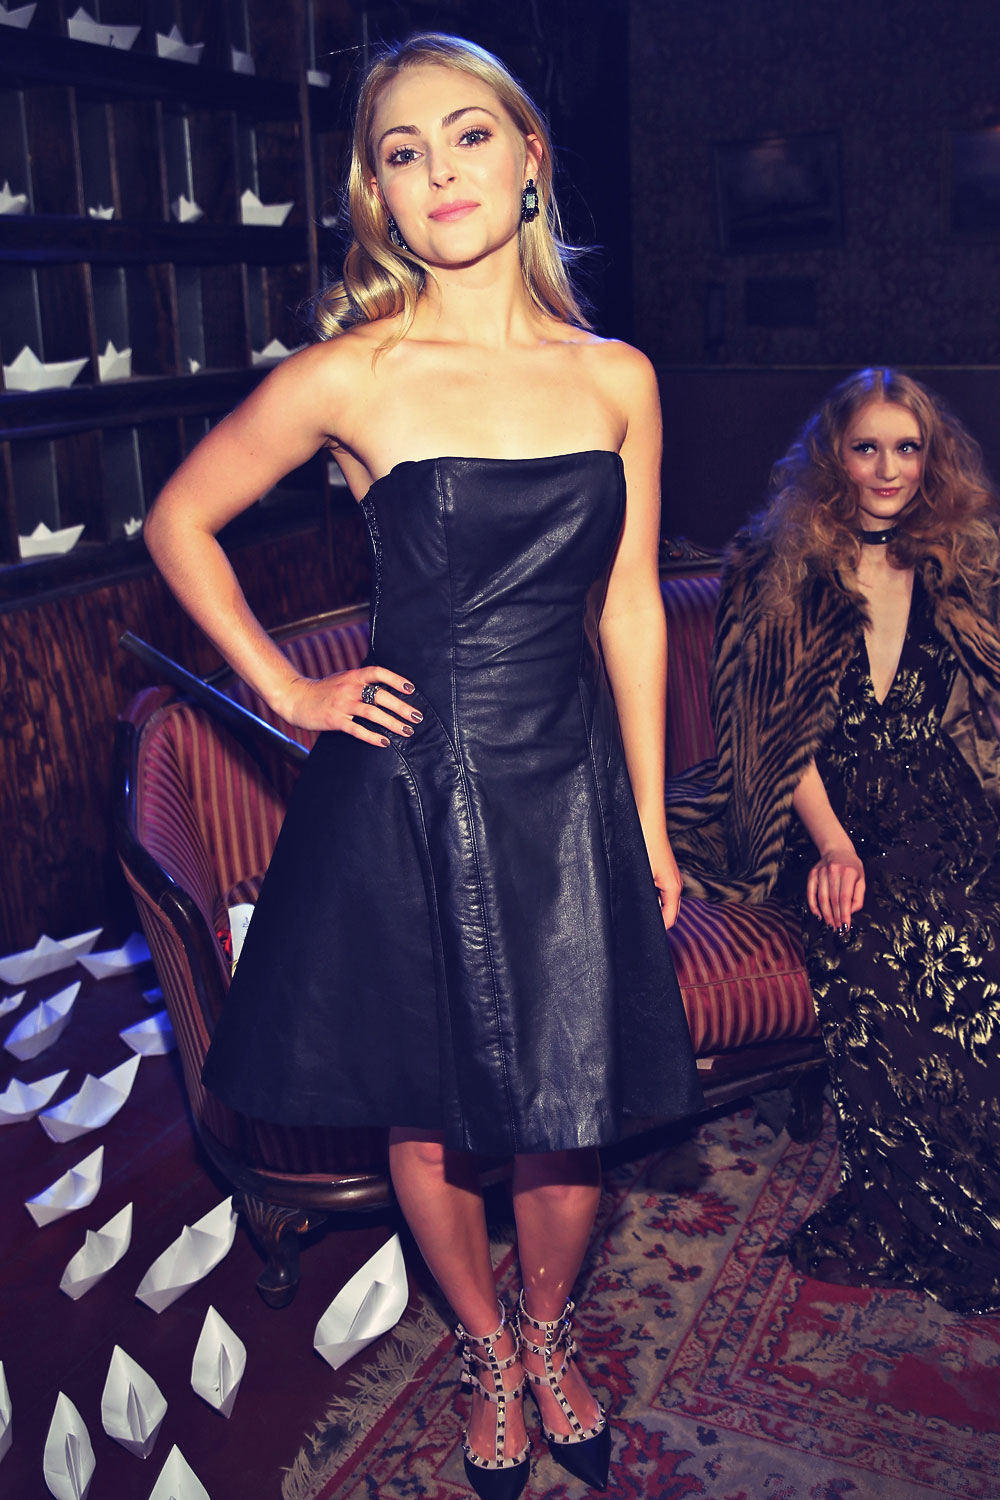 Alice and Olivia Pictures and Photos - imagecollect.com